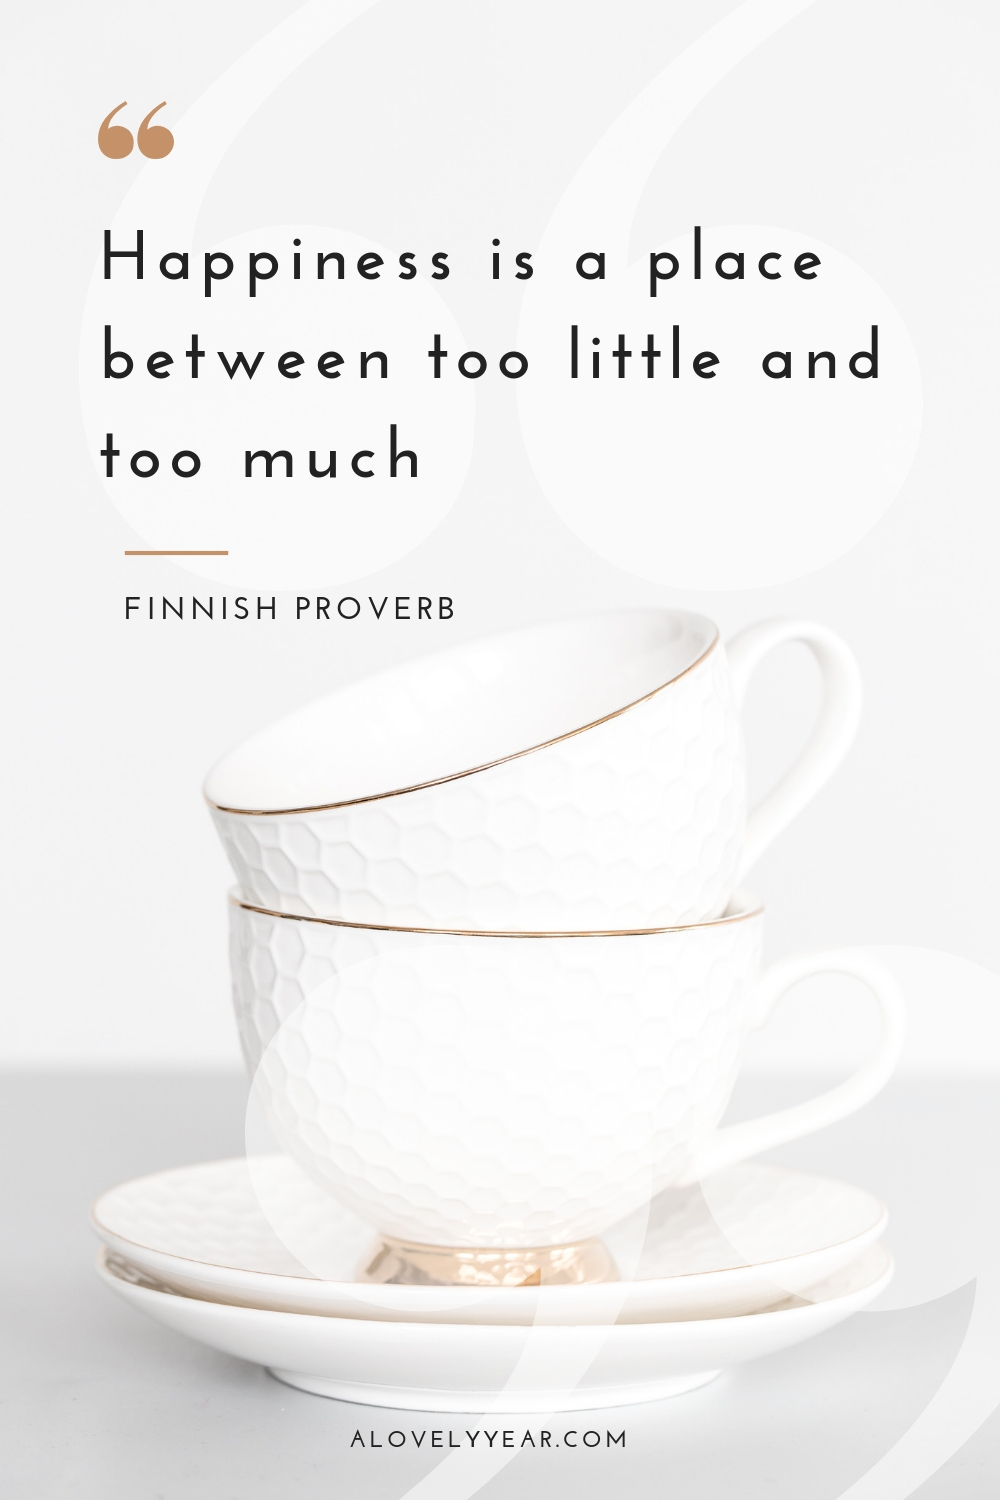 Decluttering quotes to motivate and inspire you | Happiness is a place between too little and too much - Finnish proverb